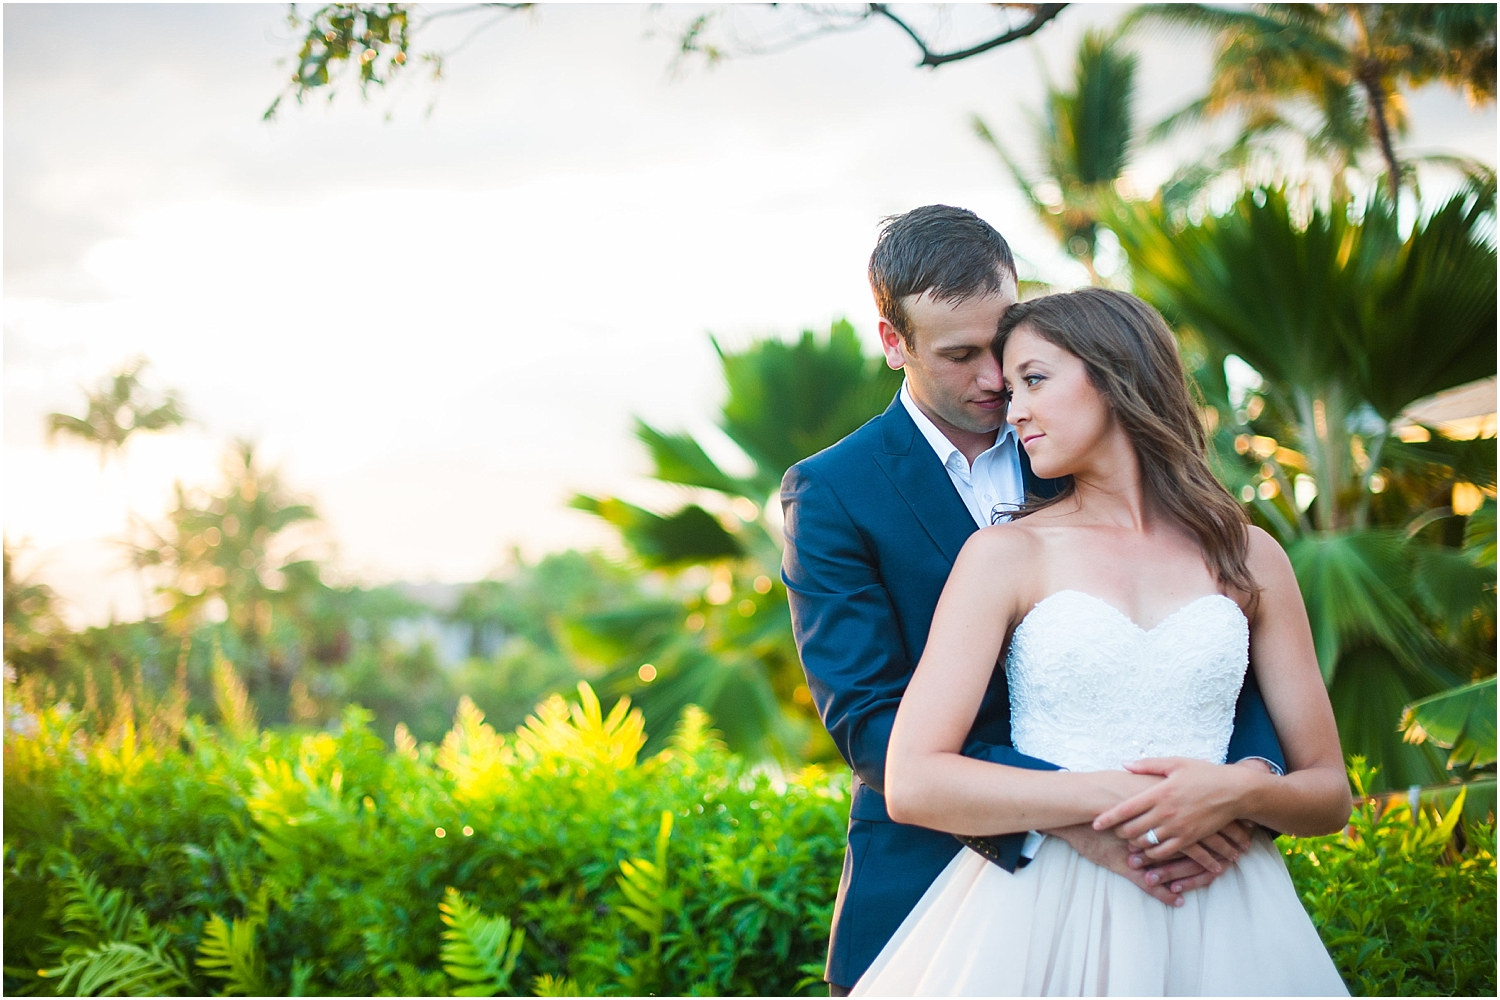 Elegant Maui Destination Wedding at Hotel Wailea